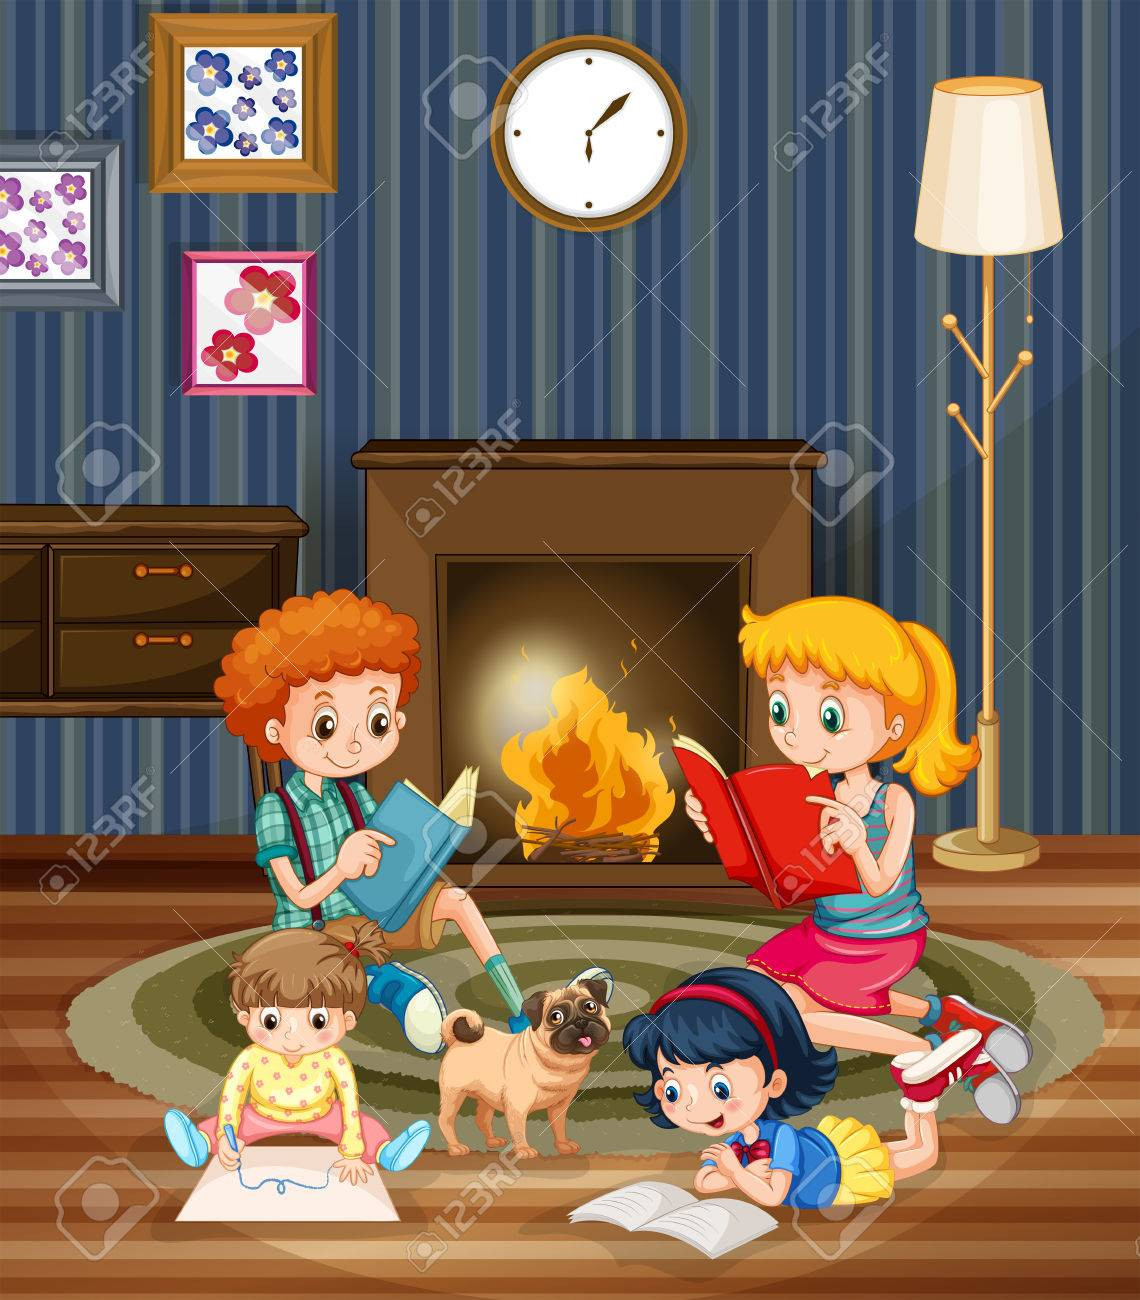 children reading books in the room illustration royalty free